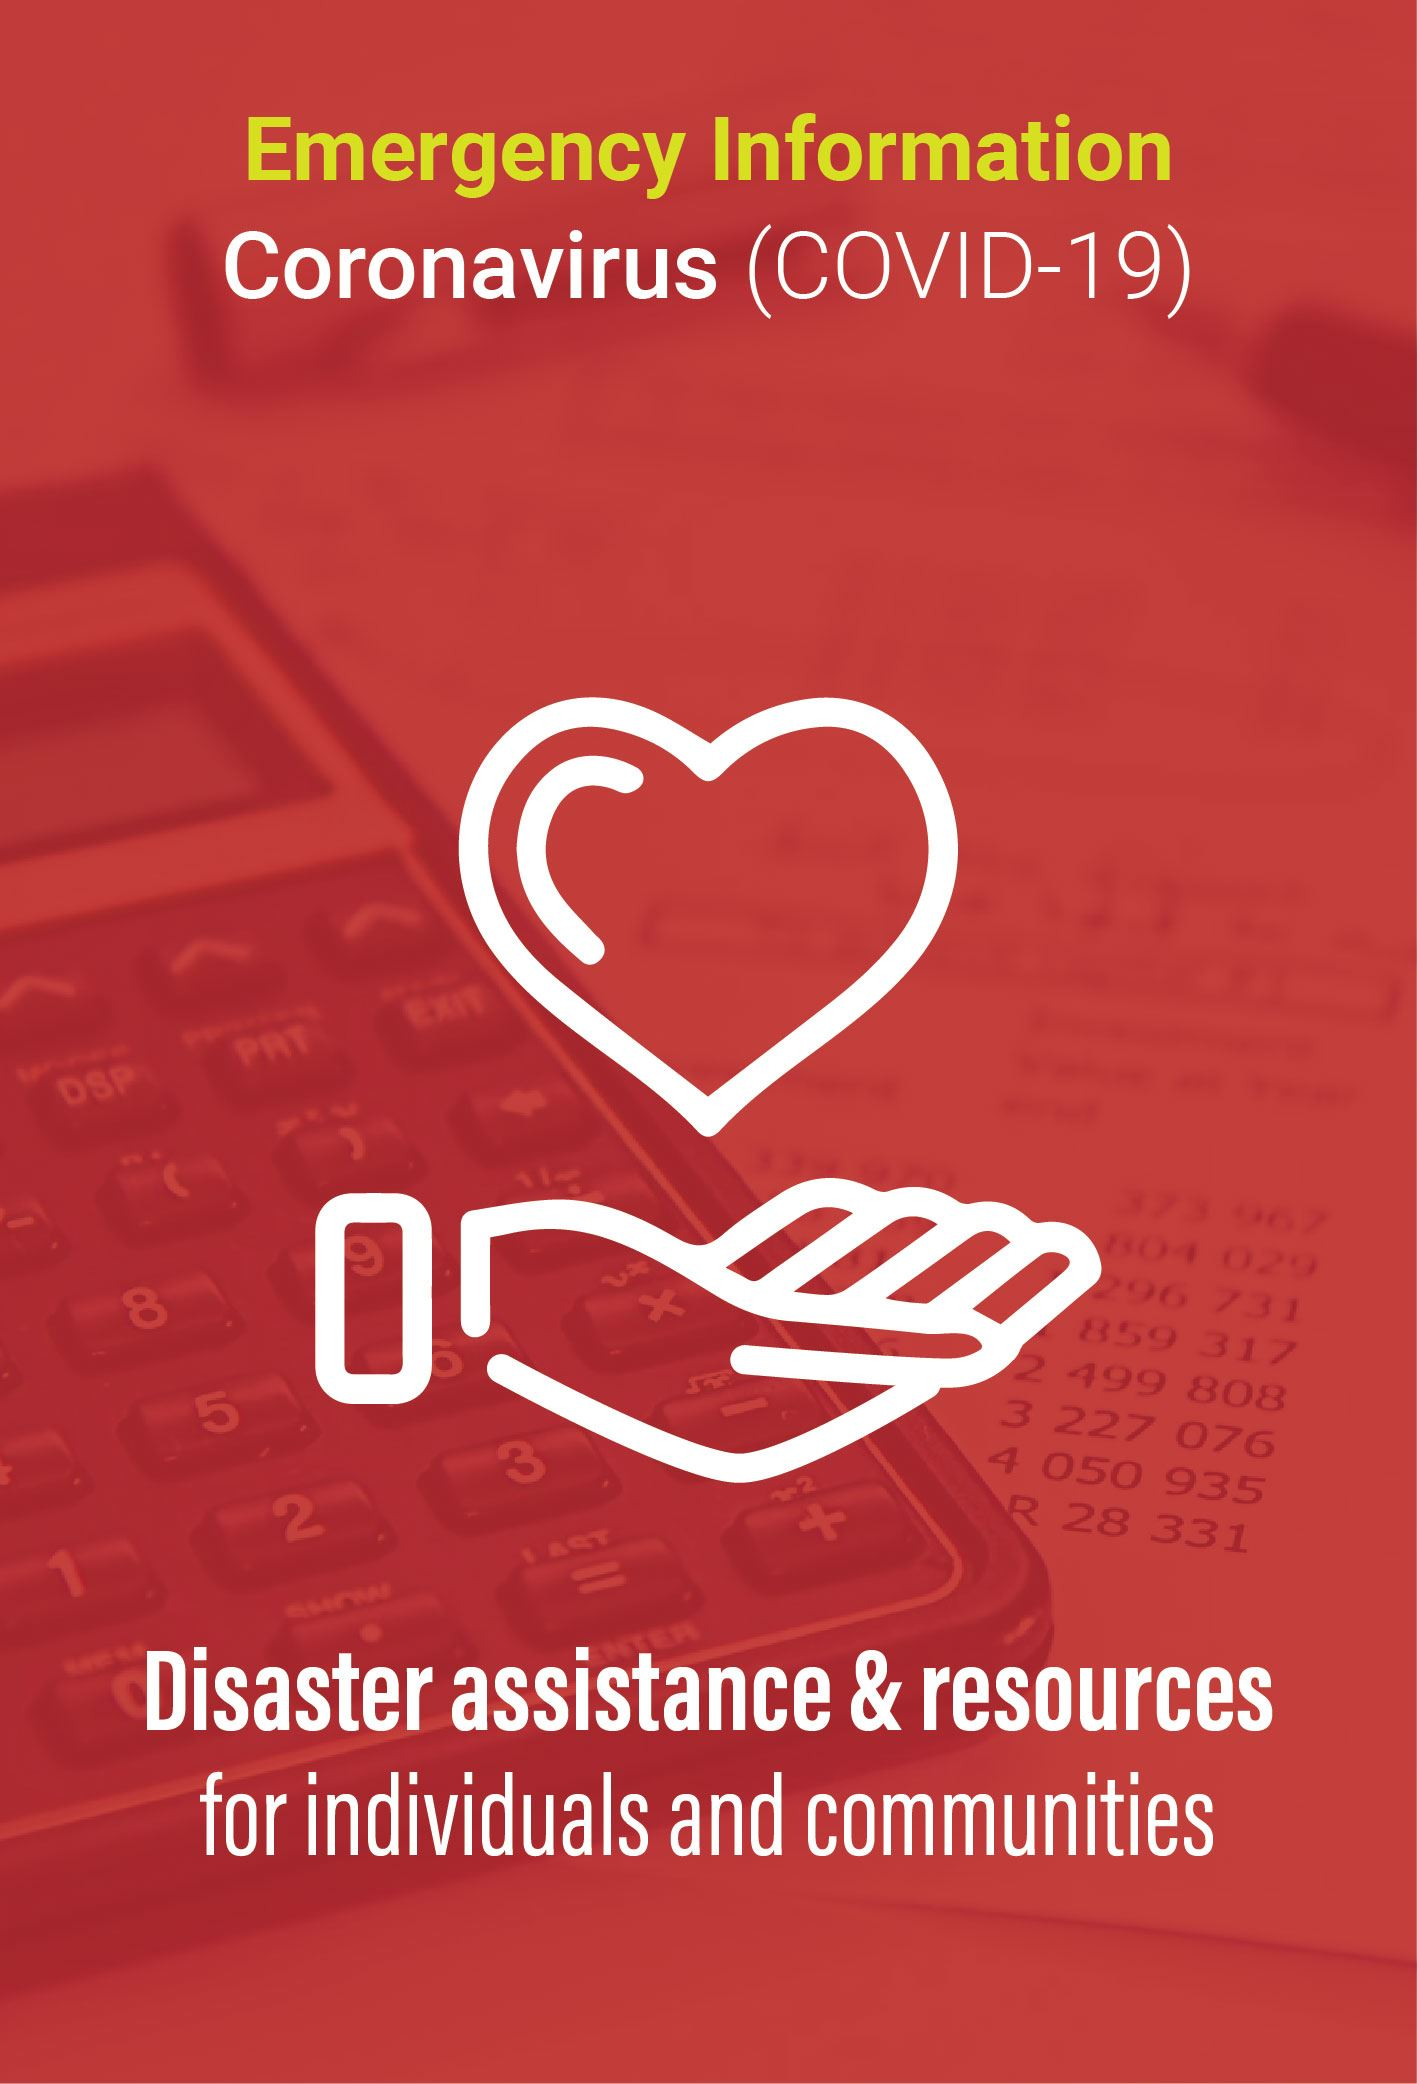 newsflash-disaster resource-02